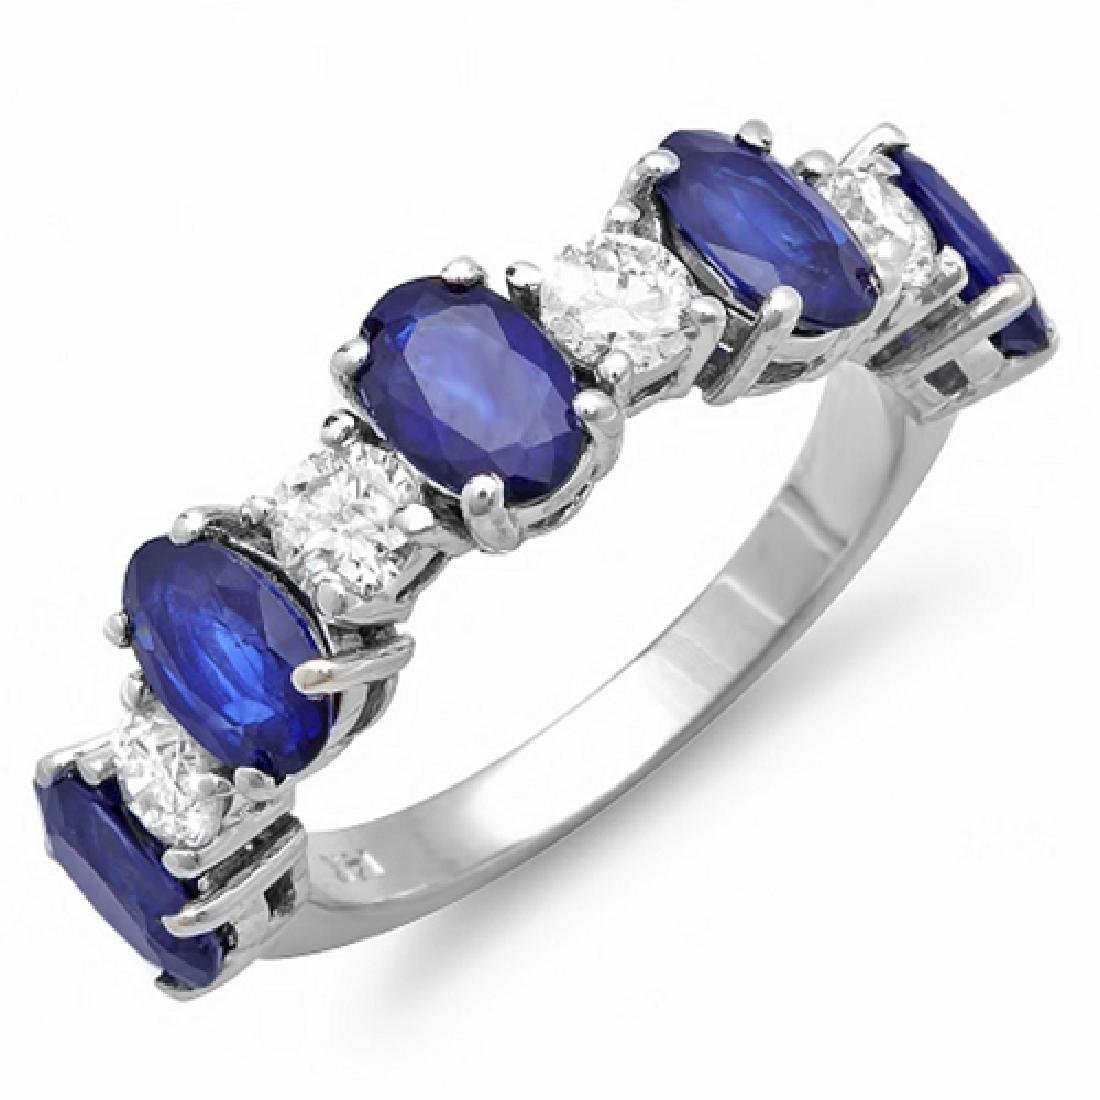 3.35 Carat Natural Sapphire 18K Solid White Gold